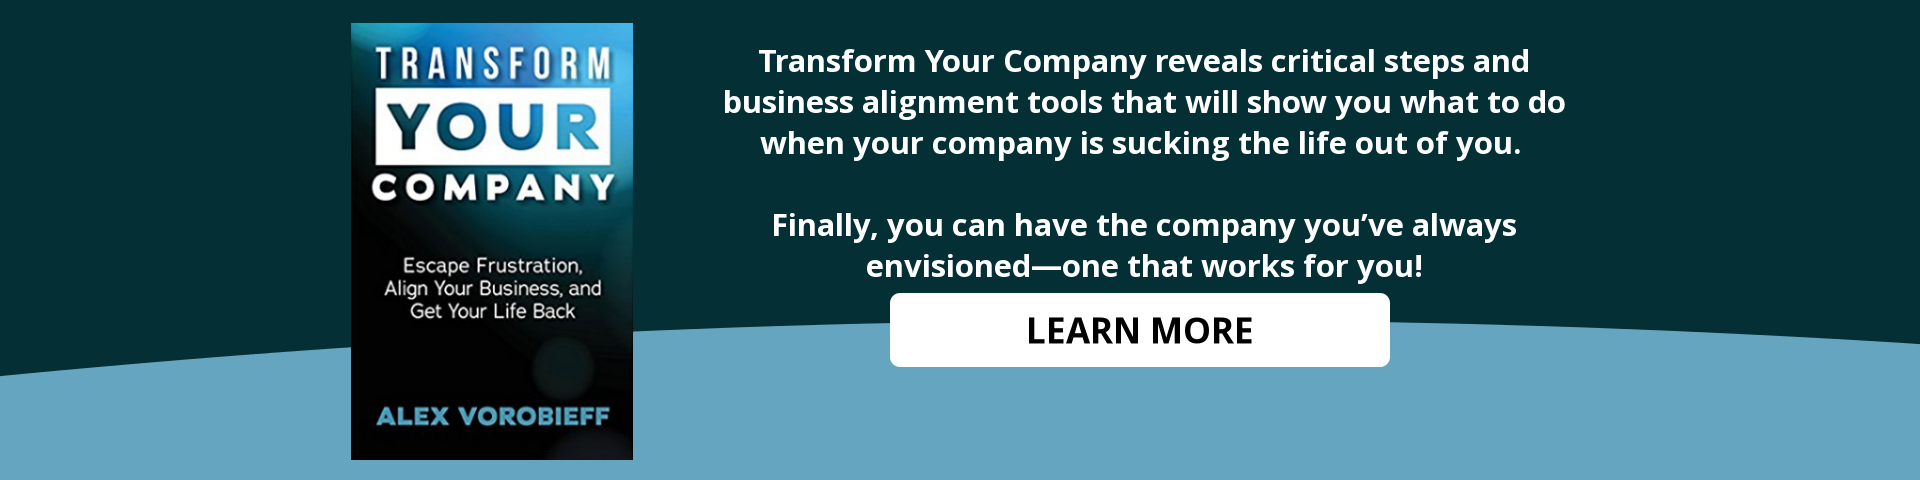 Transform Your Company by Alex Vorobieff